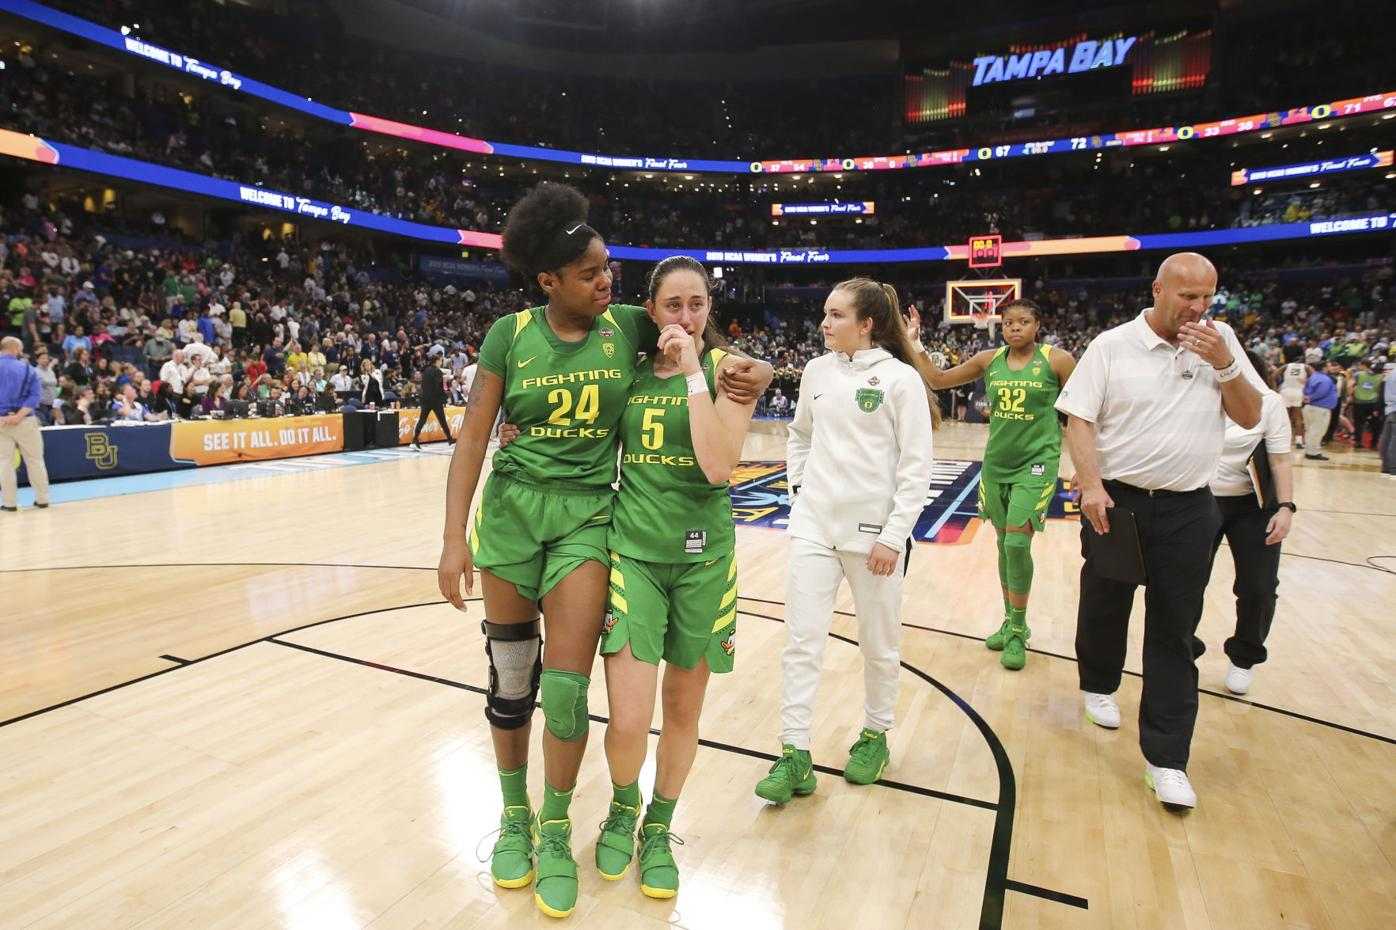 Until the next dance: Ducks aspire to build from season of firsts